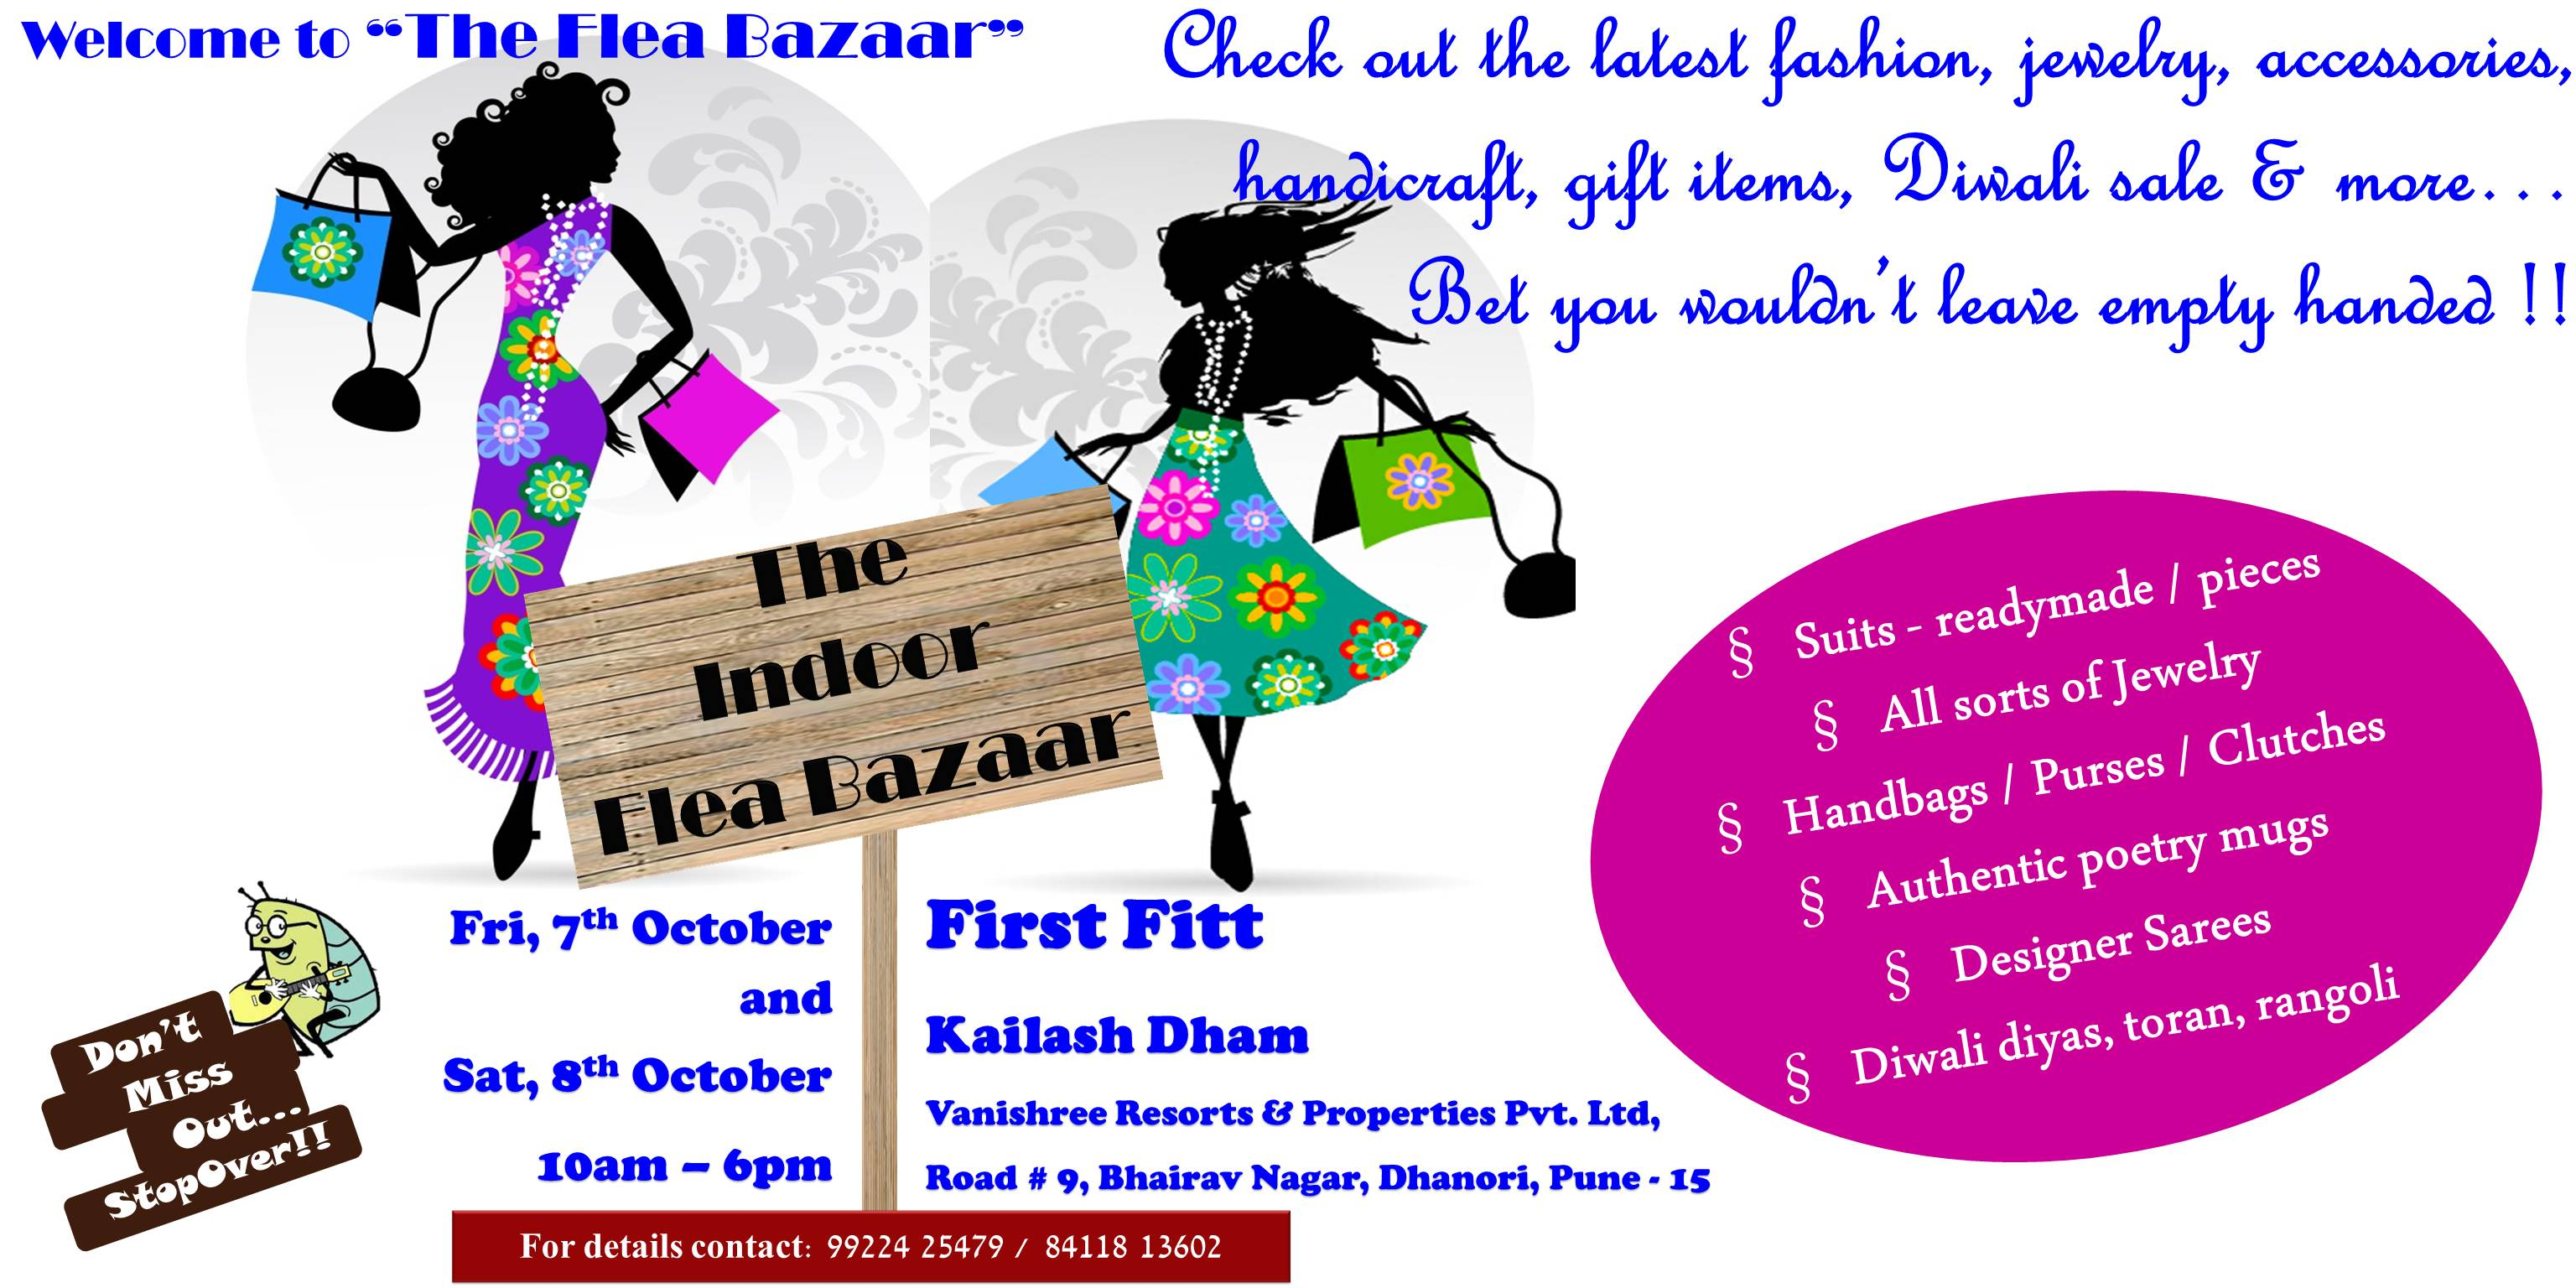 The Flea Bazaar @ Kailash Dham, Dhanori